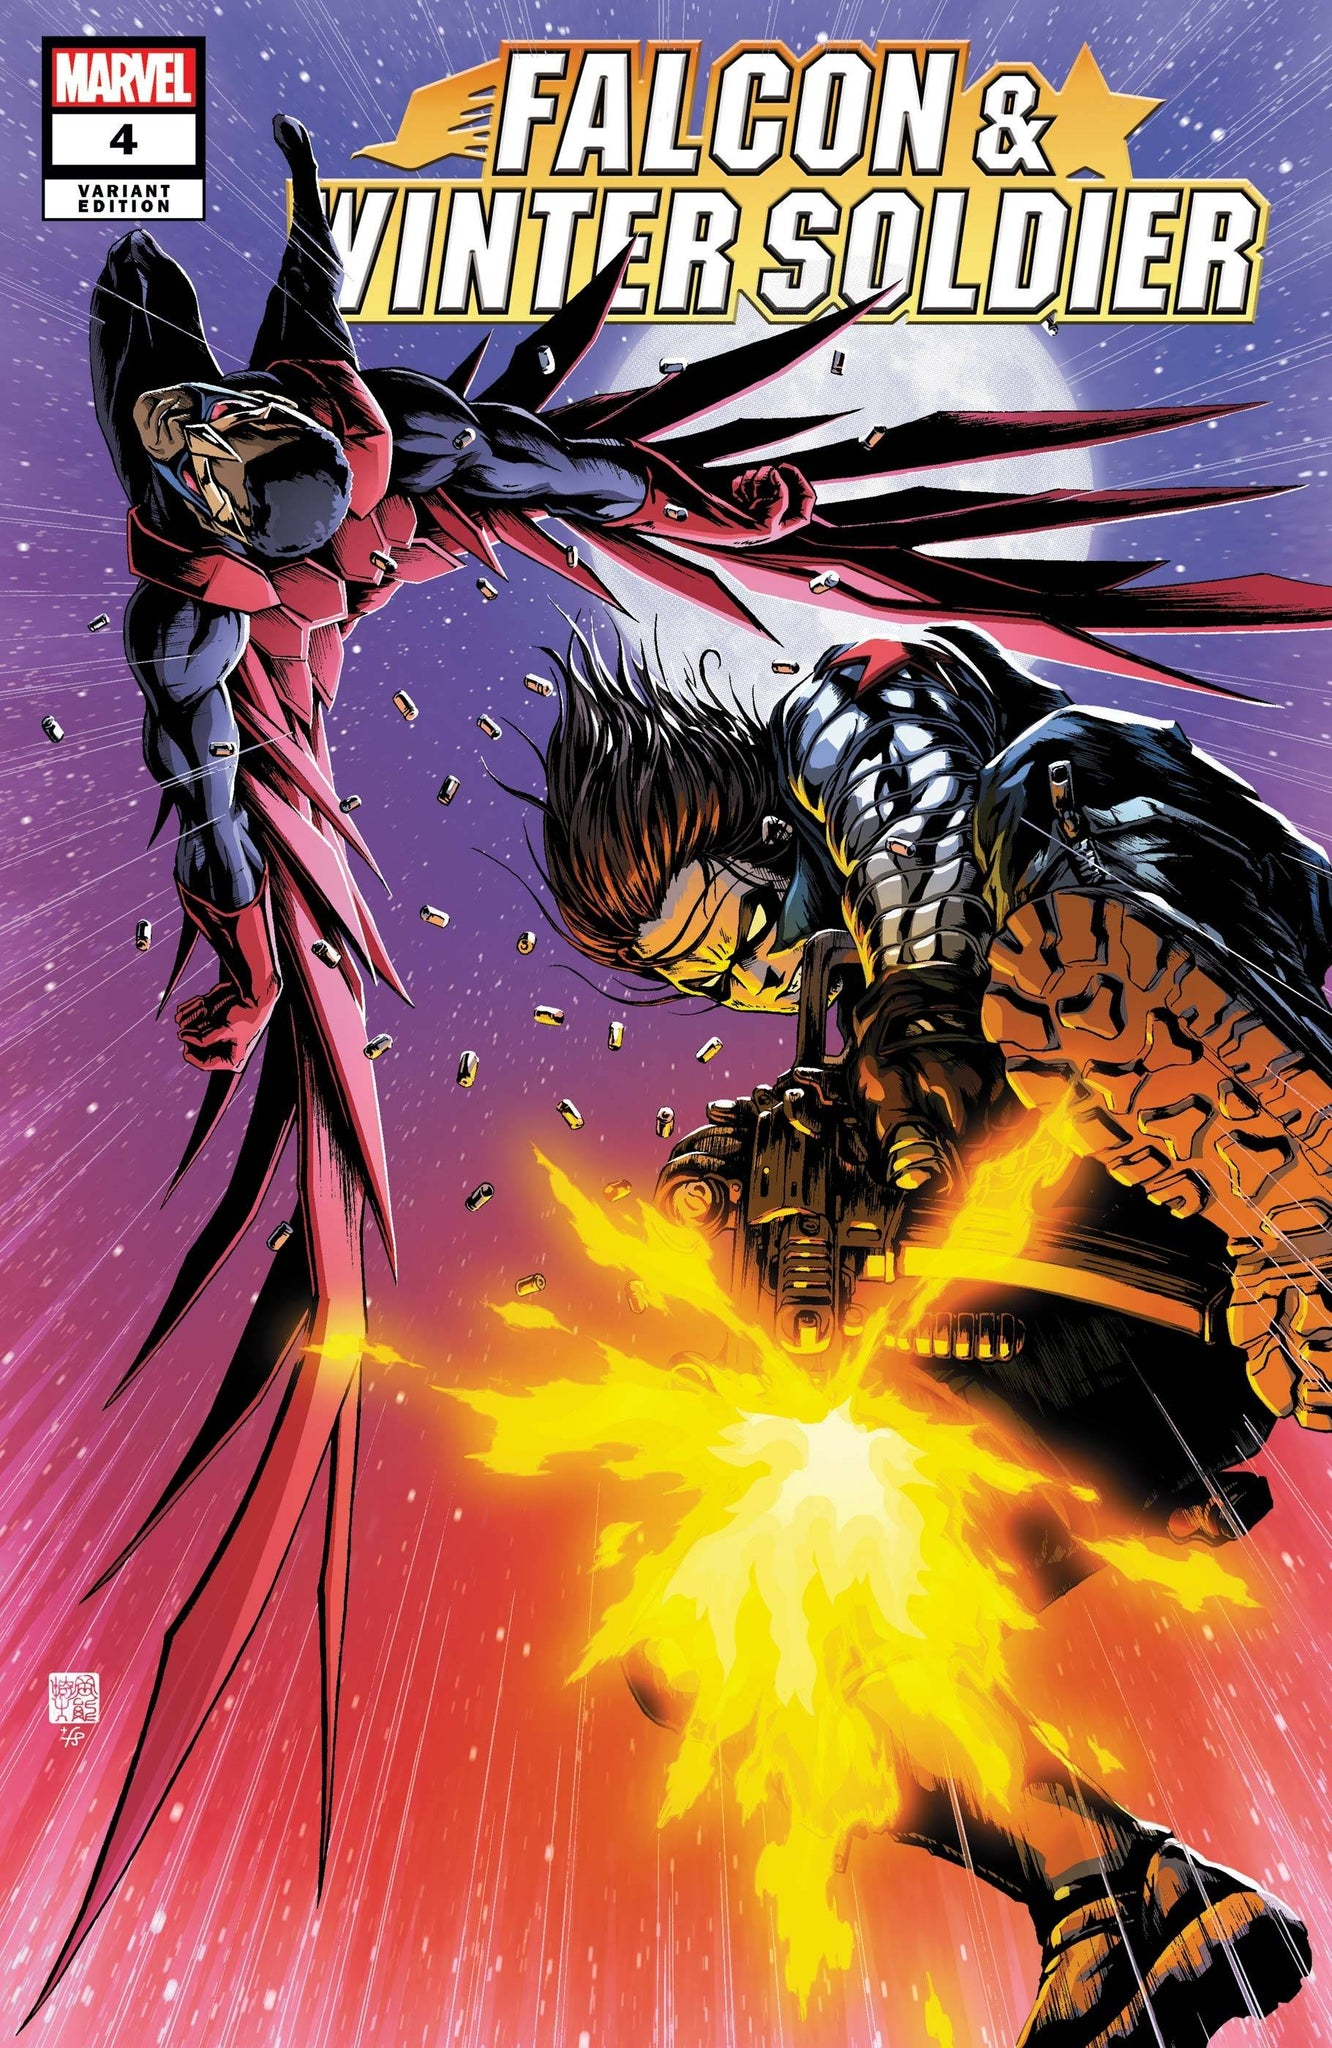 FALCON & WINTER SOLDIER #4 (OF 5) OKAZAKI VAR